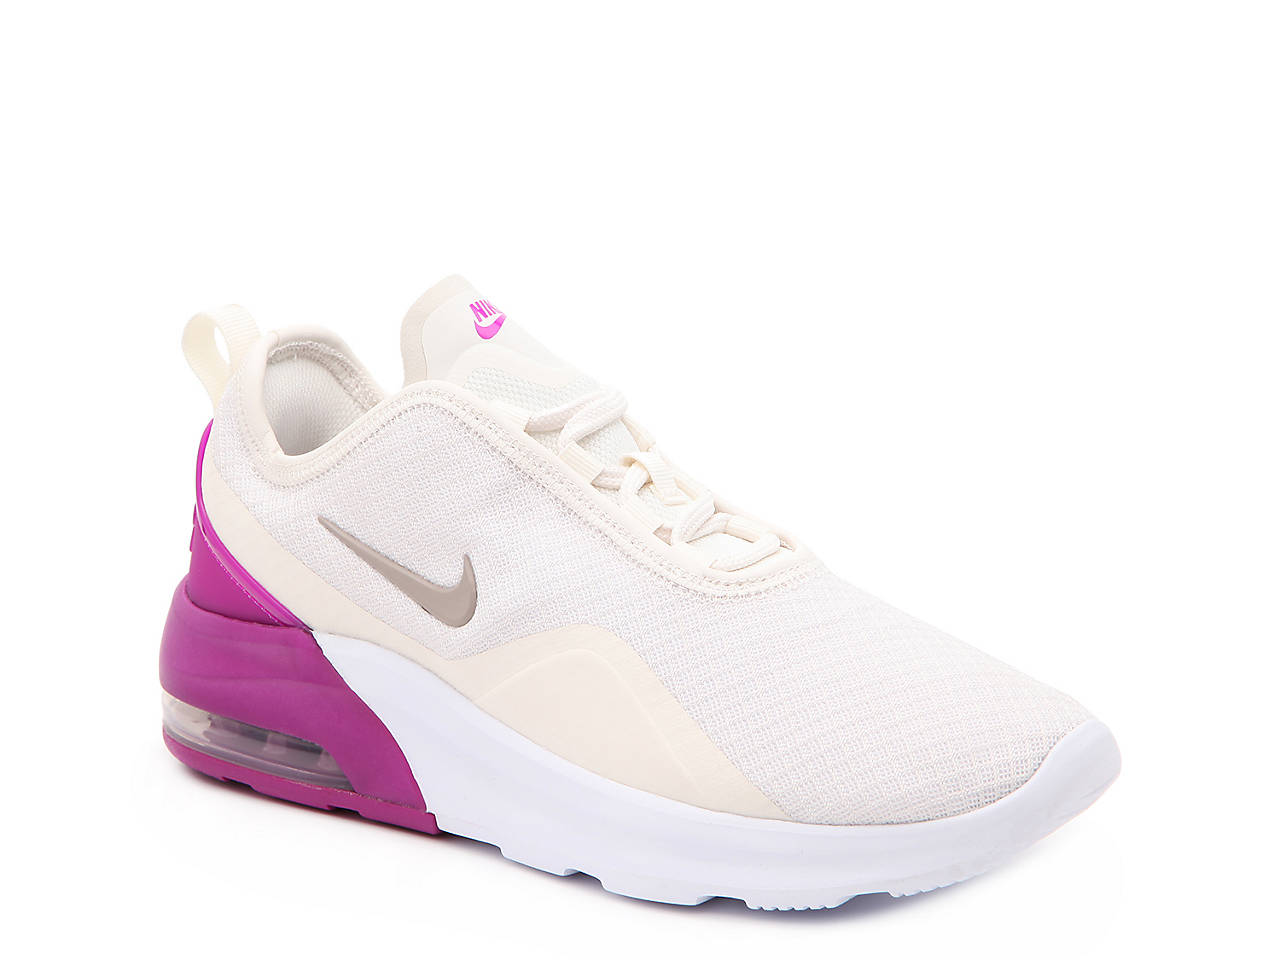 Girls' Nike Infant & Toddler Air Max Motion 2 Athletic Shoes